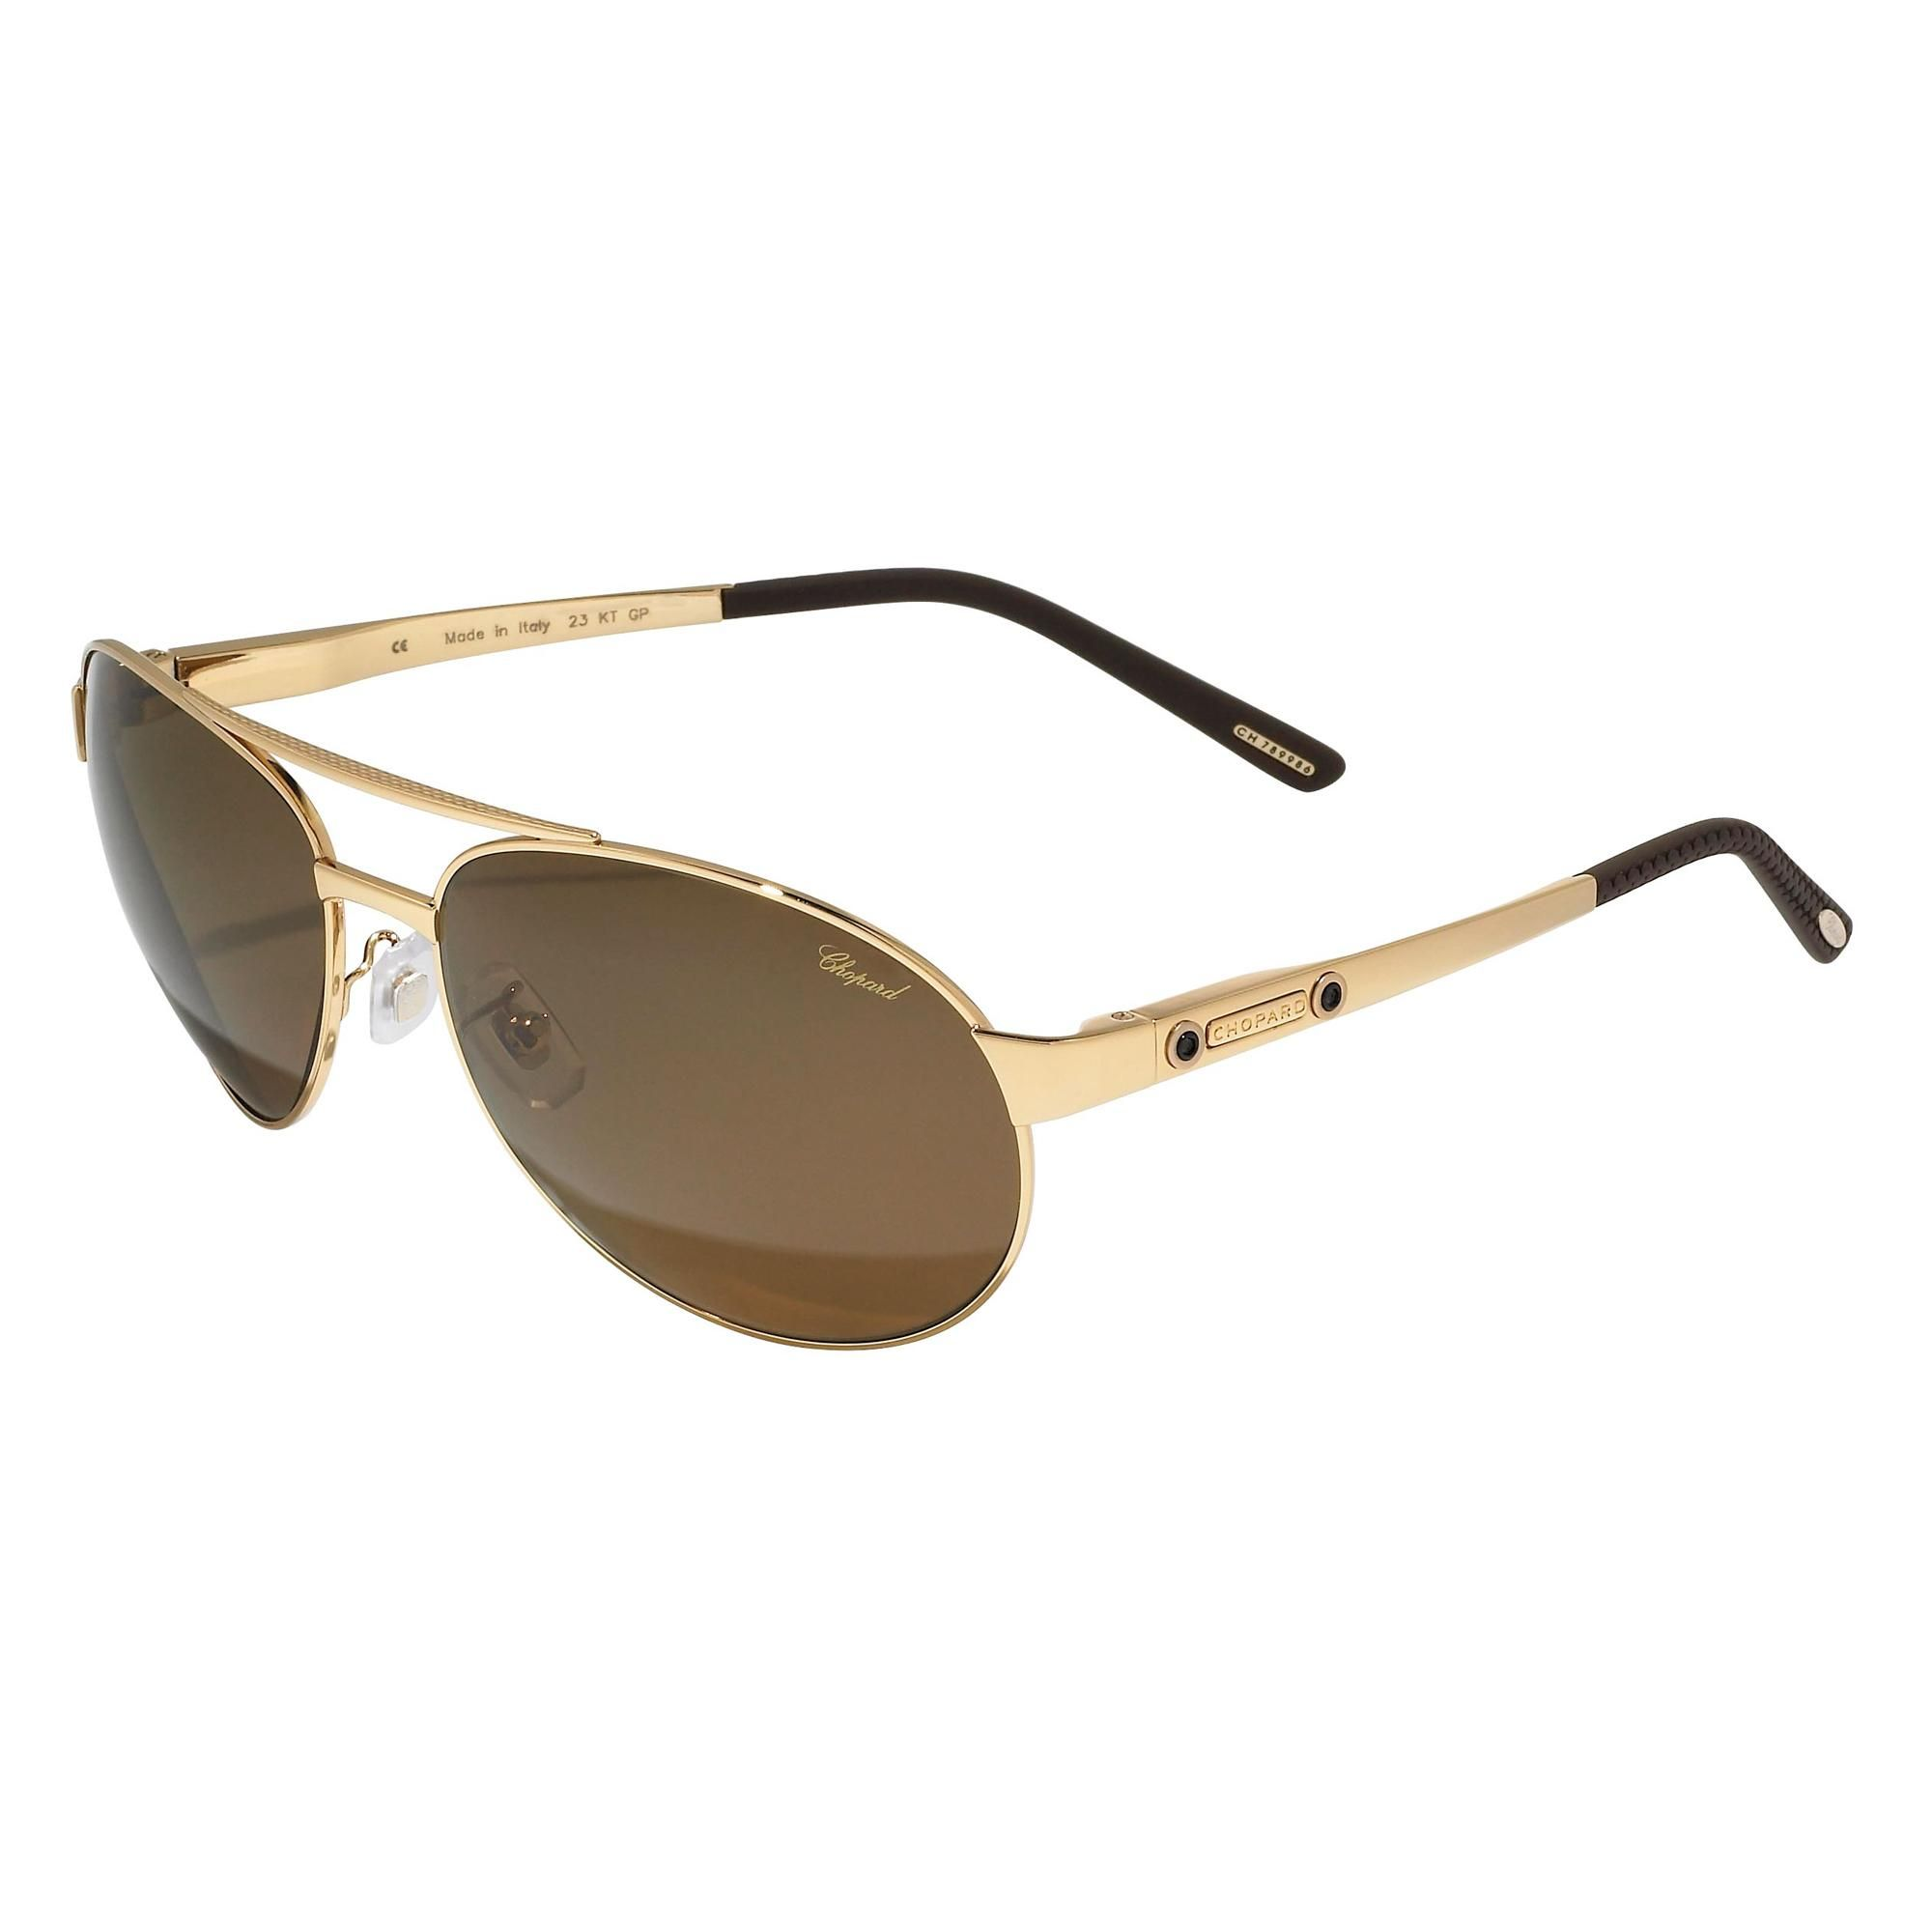 c9cb4266cd1 Chopard Sunglasses - SCH932-62-300P Stylish Sunglasses